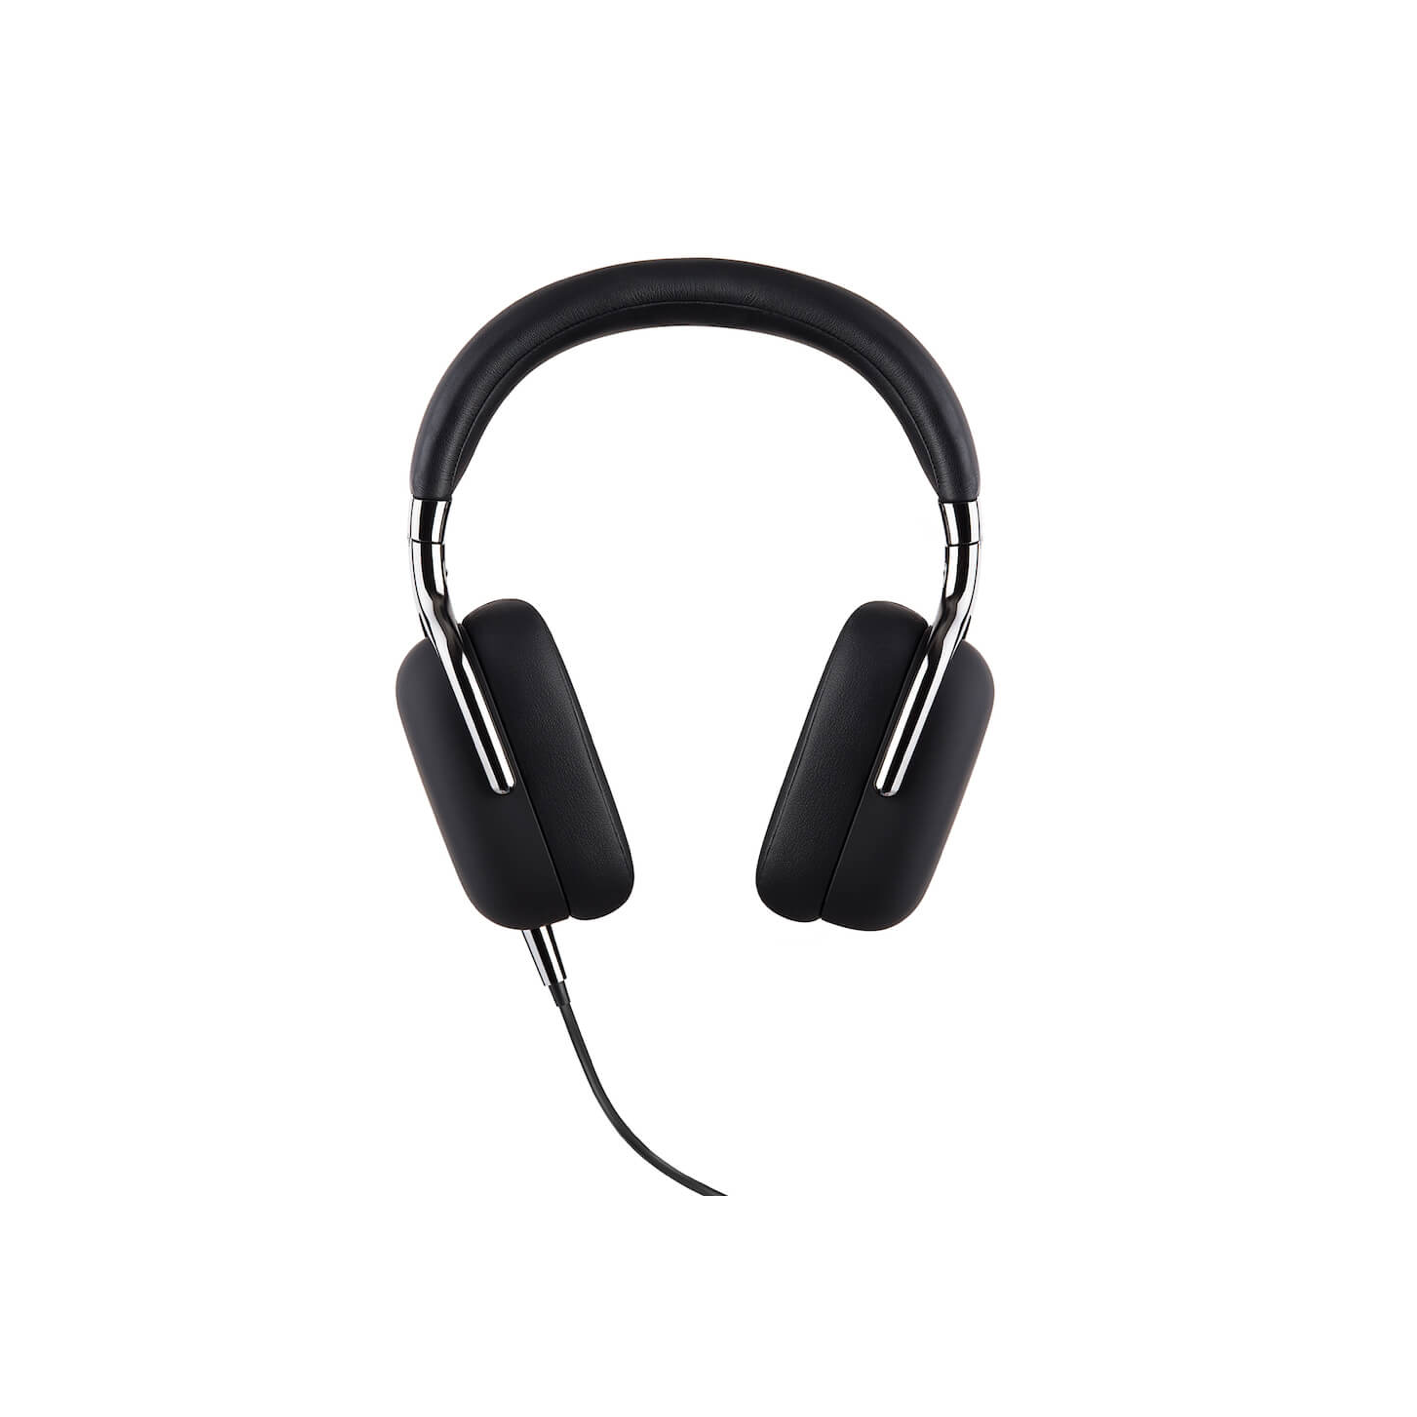 Edifier H880 Studio Headphones Black